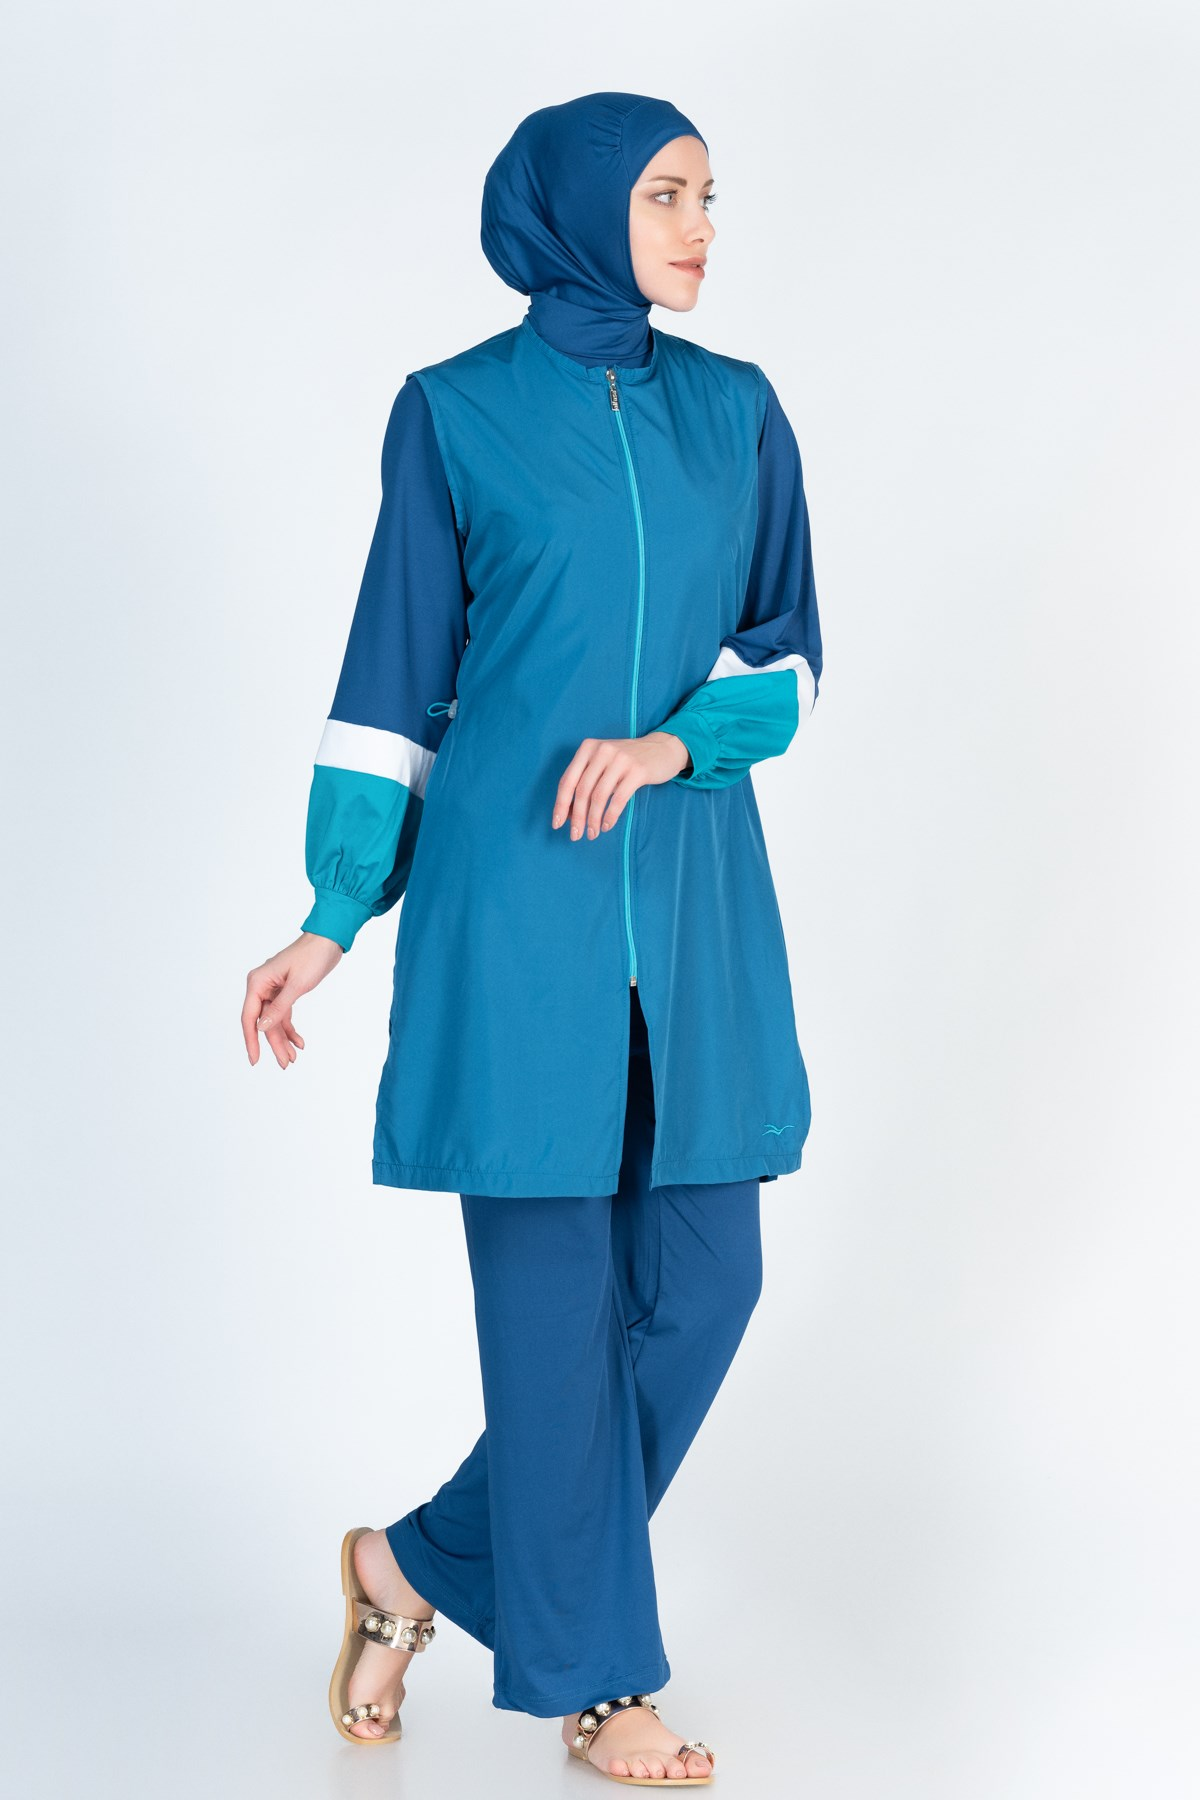 Alfasa 363 Long Coreved Vest Trousers Islamic Burkini Swimsuit